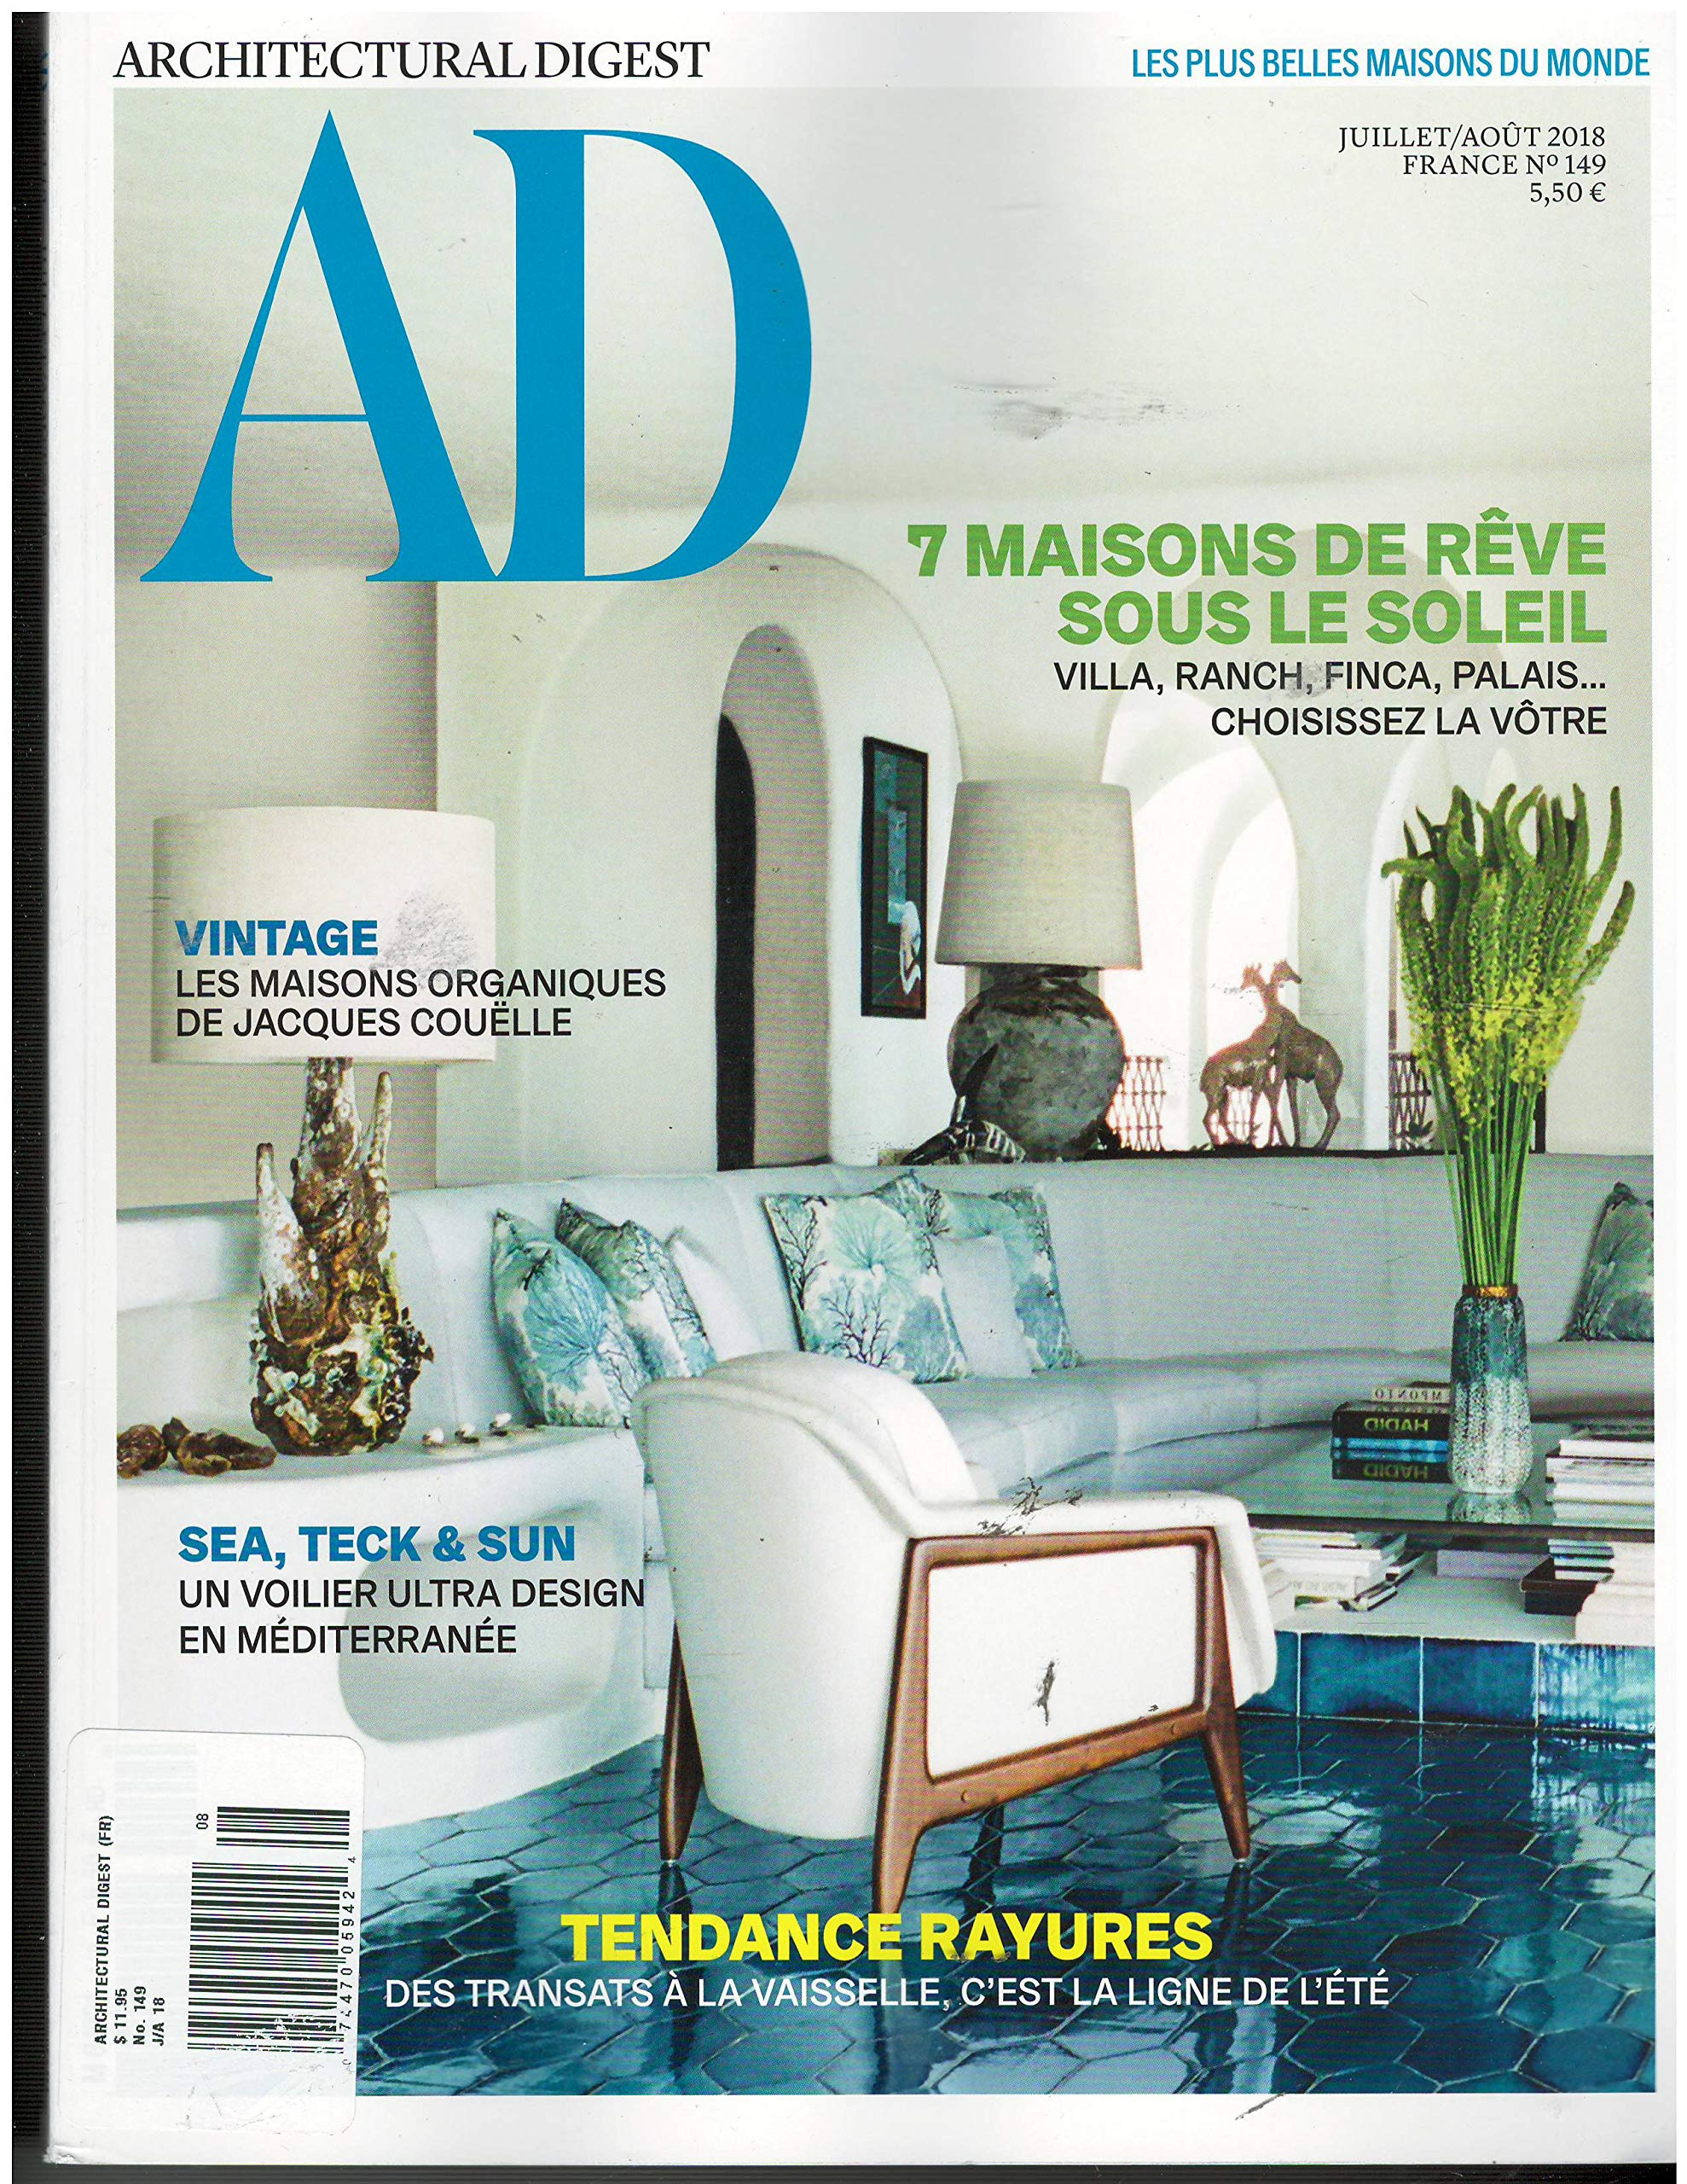 Architectural Digest French Edition Julliet Aout 2018 ...